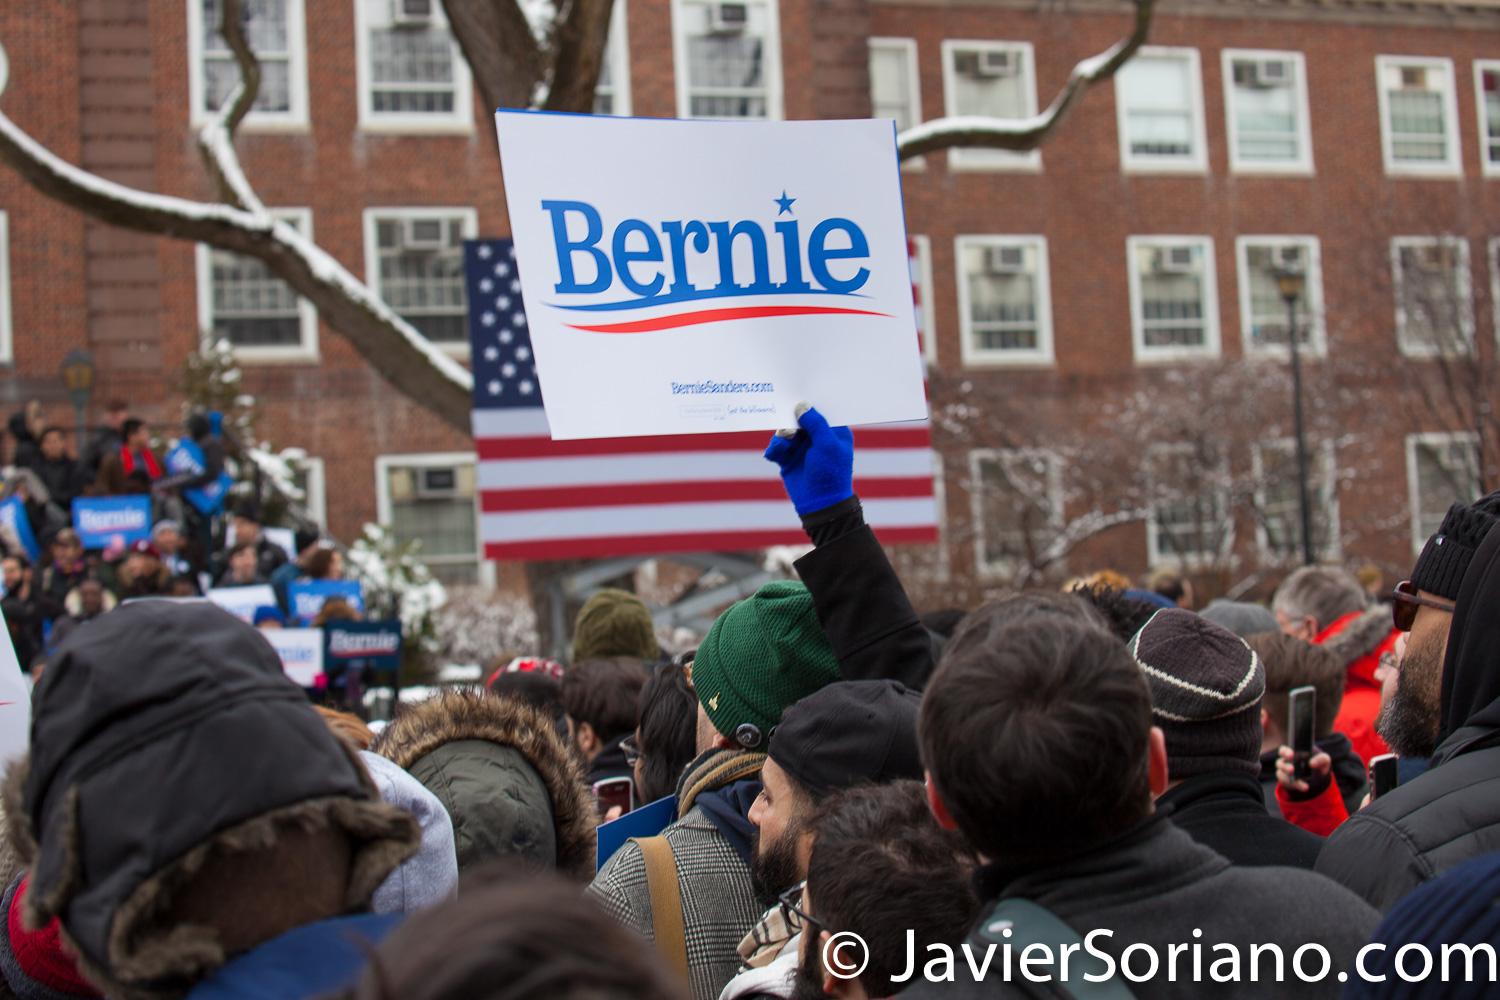 Saturday, March 2, 2019. Brooklyn College. Brooklyn, New York City. People waiting for U.S. Senator and presidential candidate Bernie Sanders. This is the first event of his 2020 presidential campaign. Photo by Javier Soriano/www.JavierSoriano.com